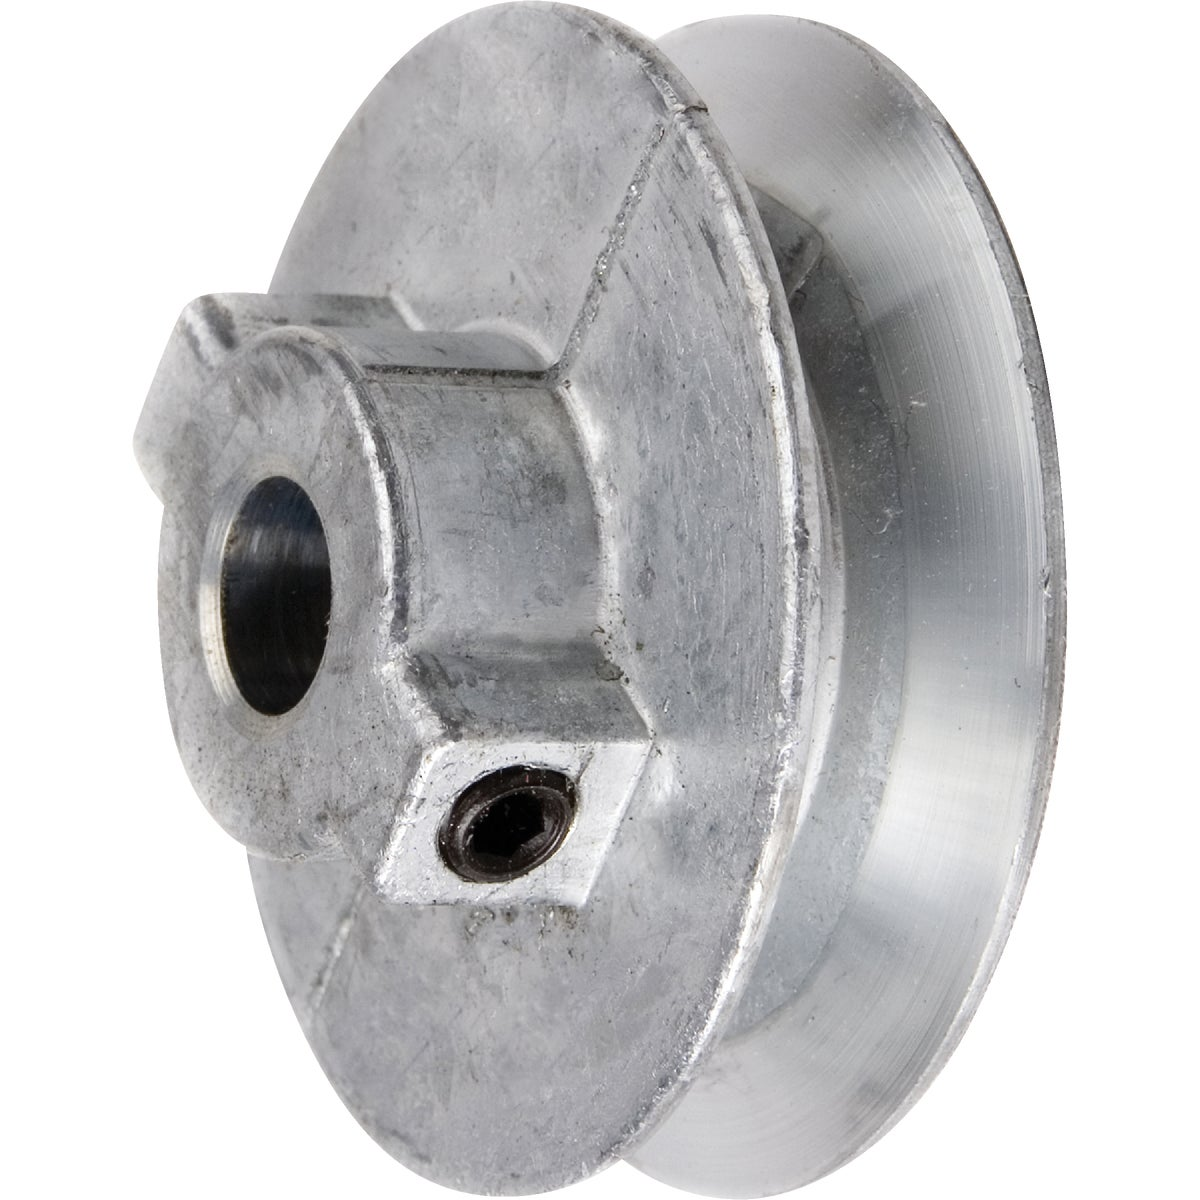 2-1/4X1/2 PULLEY - 225A5 by Chicago Die Casting